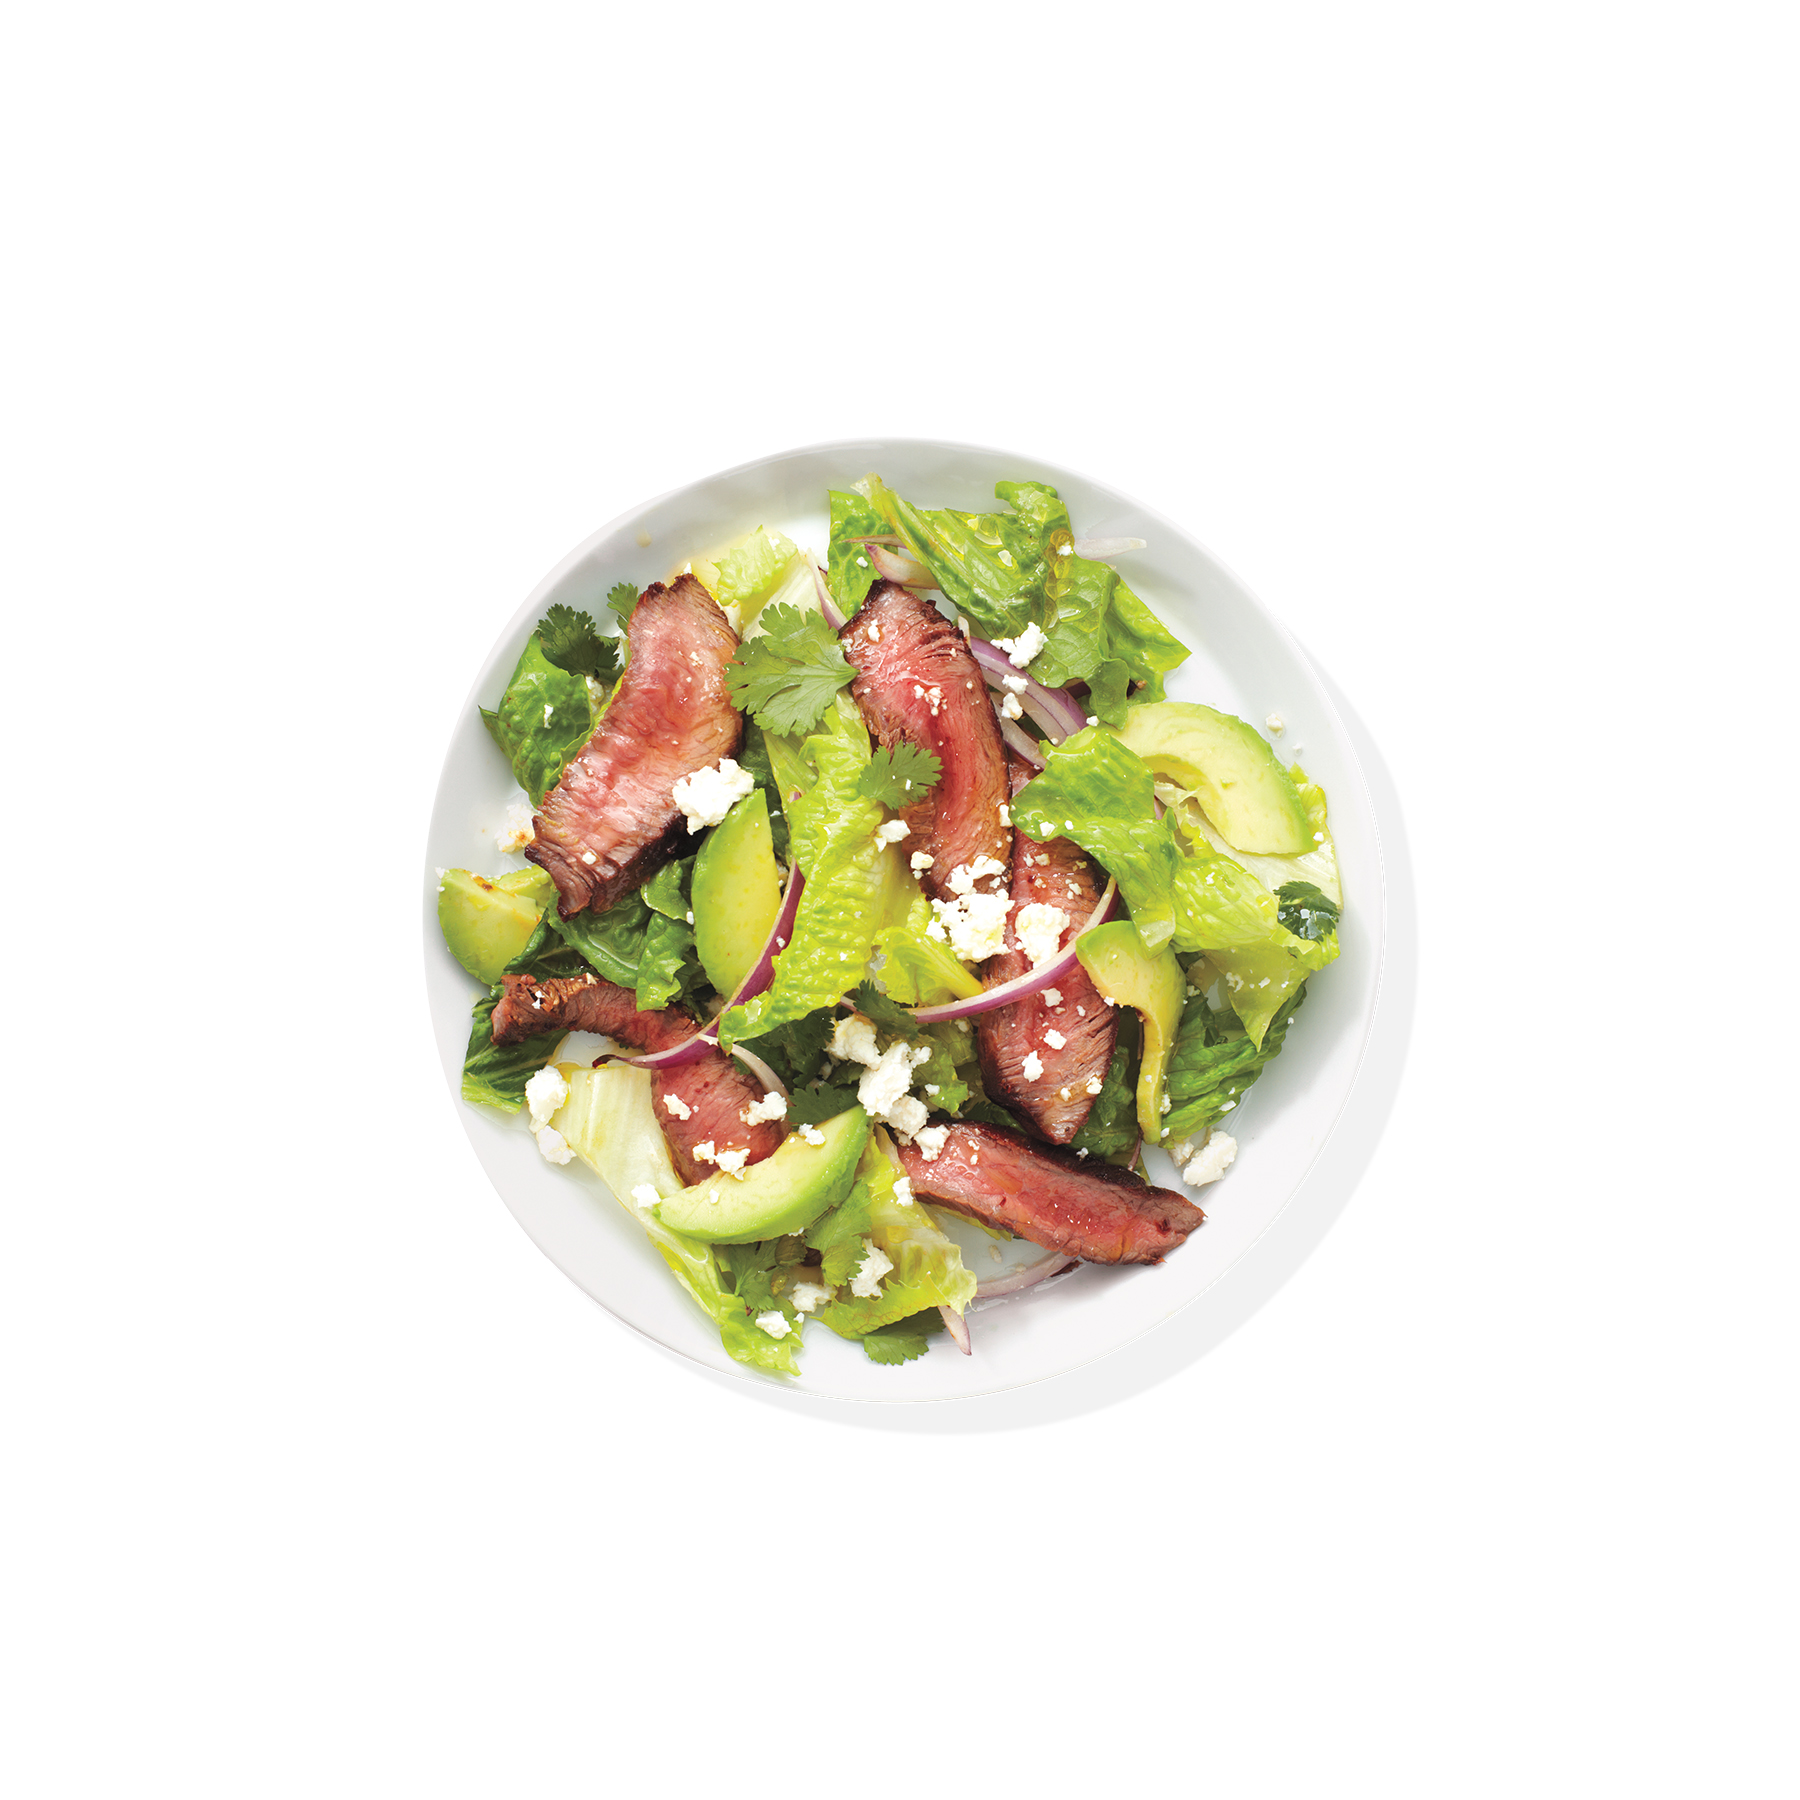 Steak Salad With Avocado and Onion